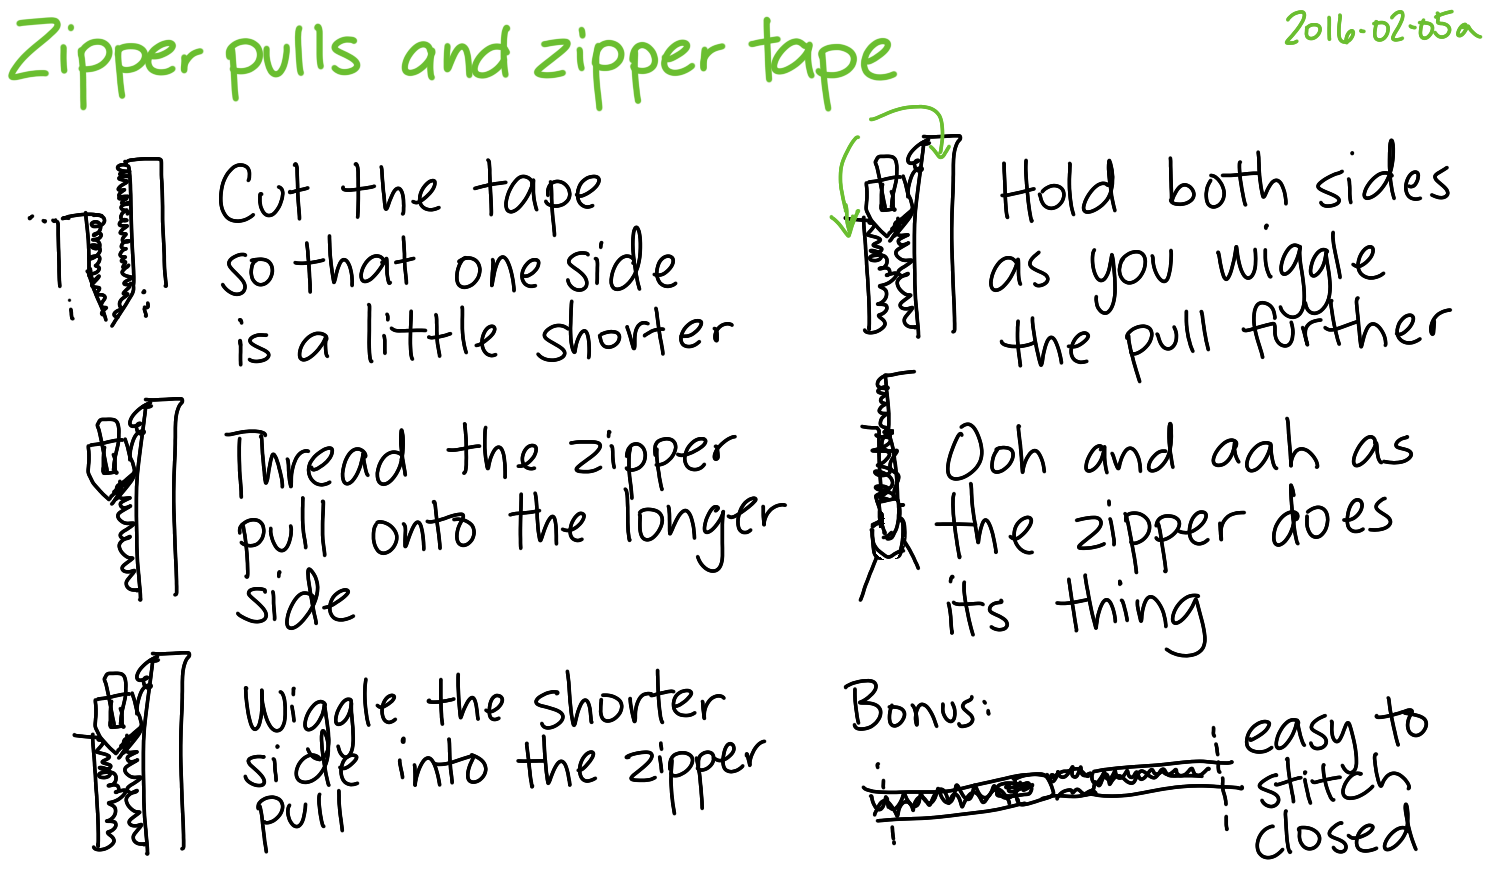 2016-02-05a Zipper pulls and zipper tape -- index card #sewing.png